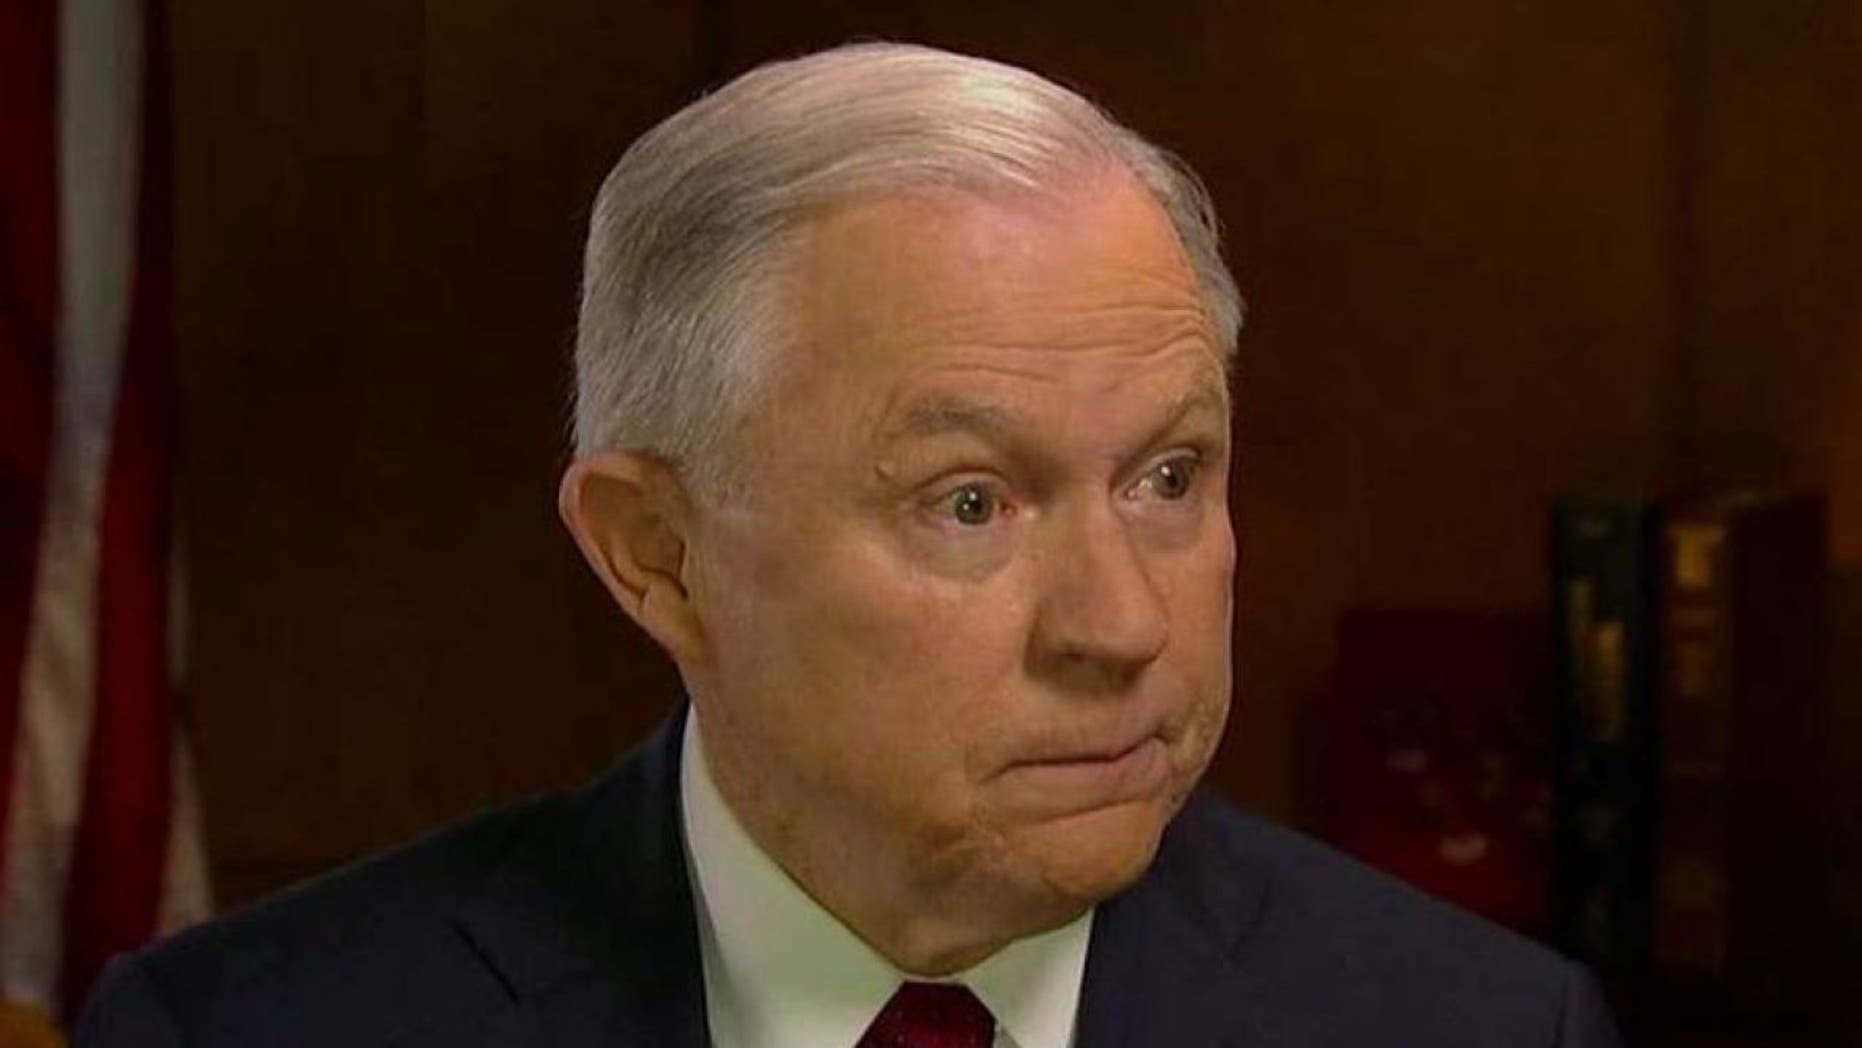 Attorney General Jeff Sessions said he would not immediately appoint a new special counsel to investigate Republican concerns involving the FBI and Justice Department.